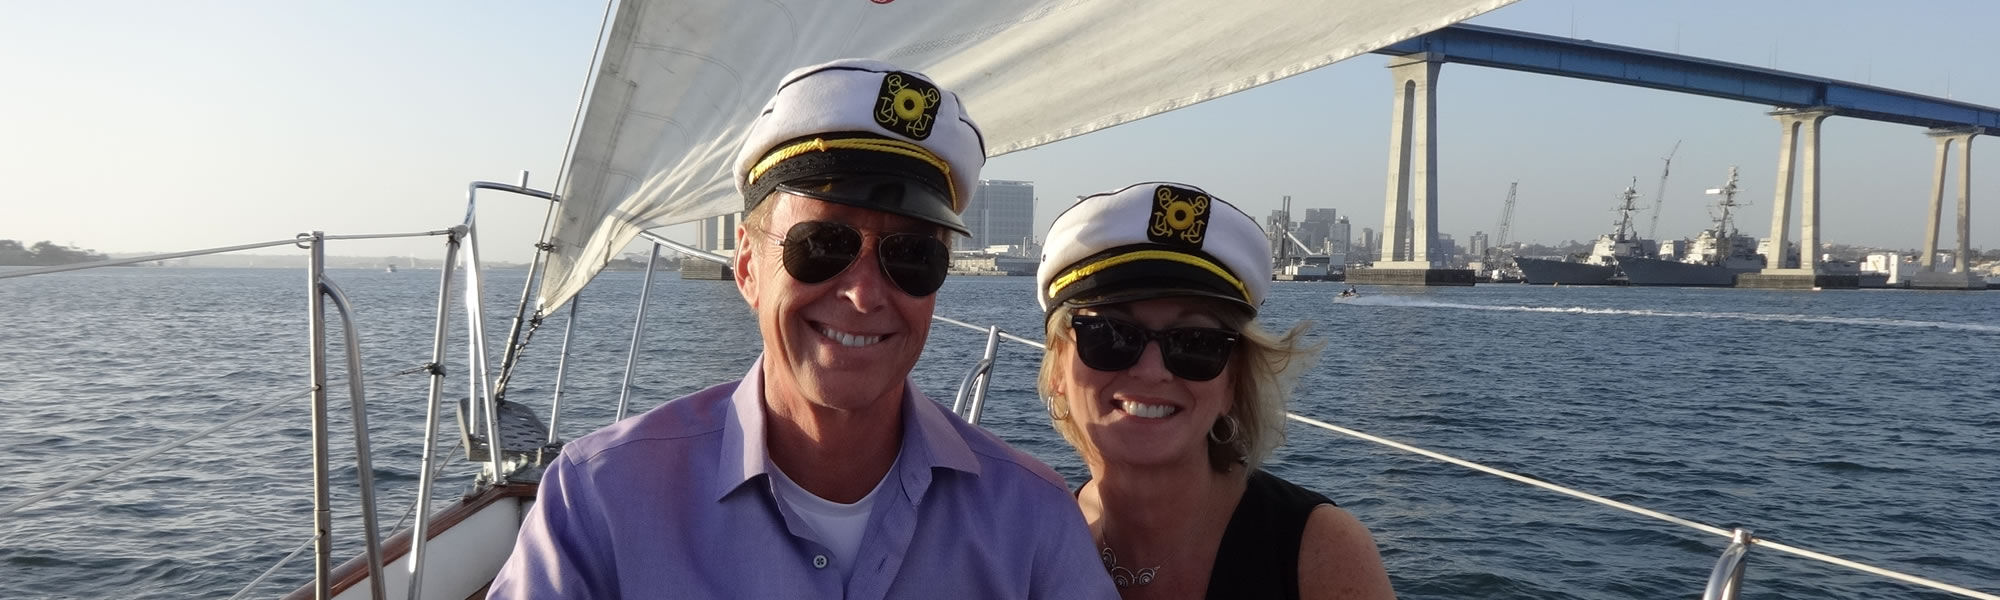 Private sailing charter on JADA - classic wooden sailboat, in San Diego